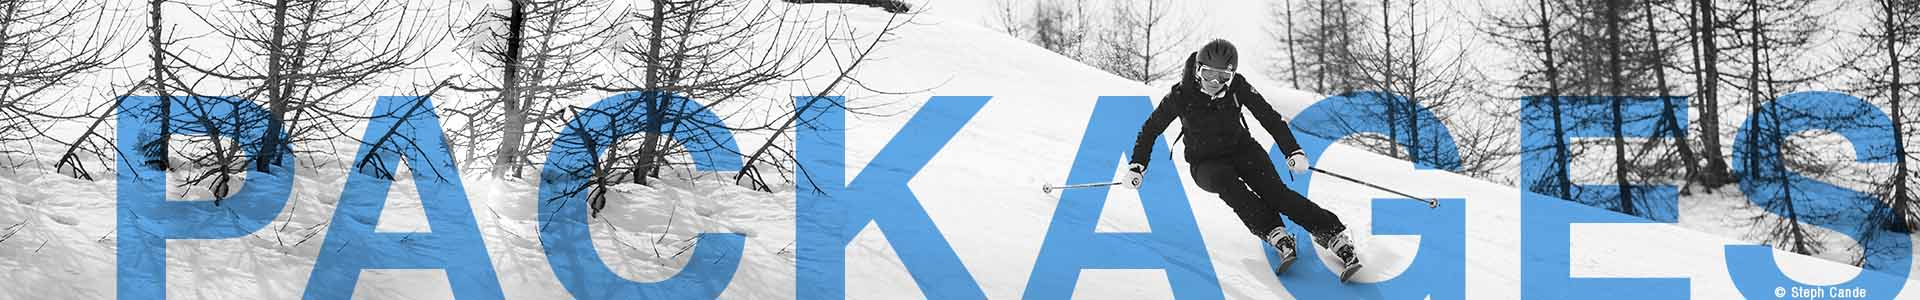 ski-packages-1920x300.jpg